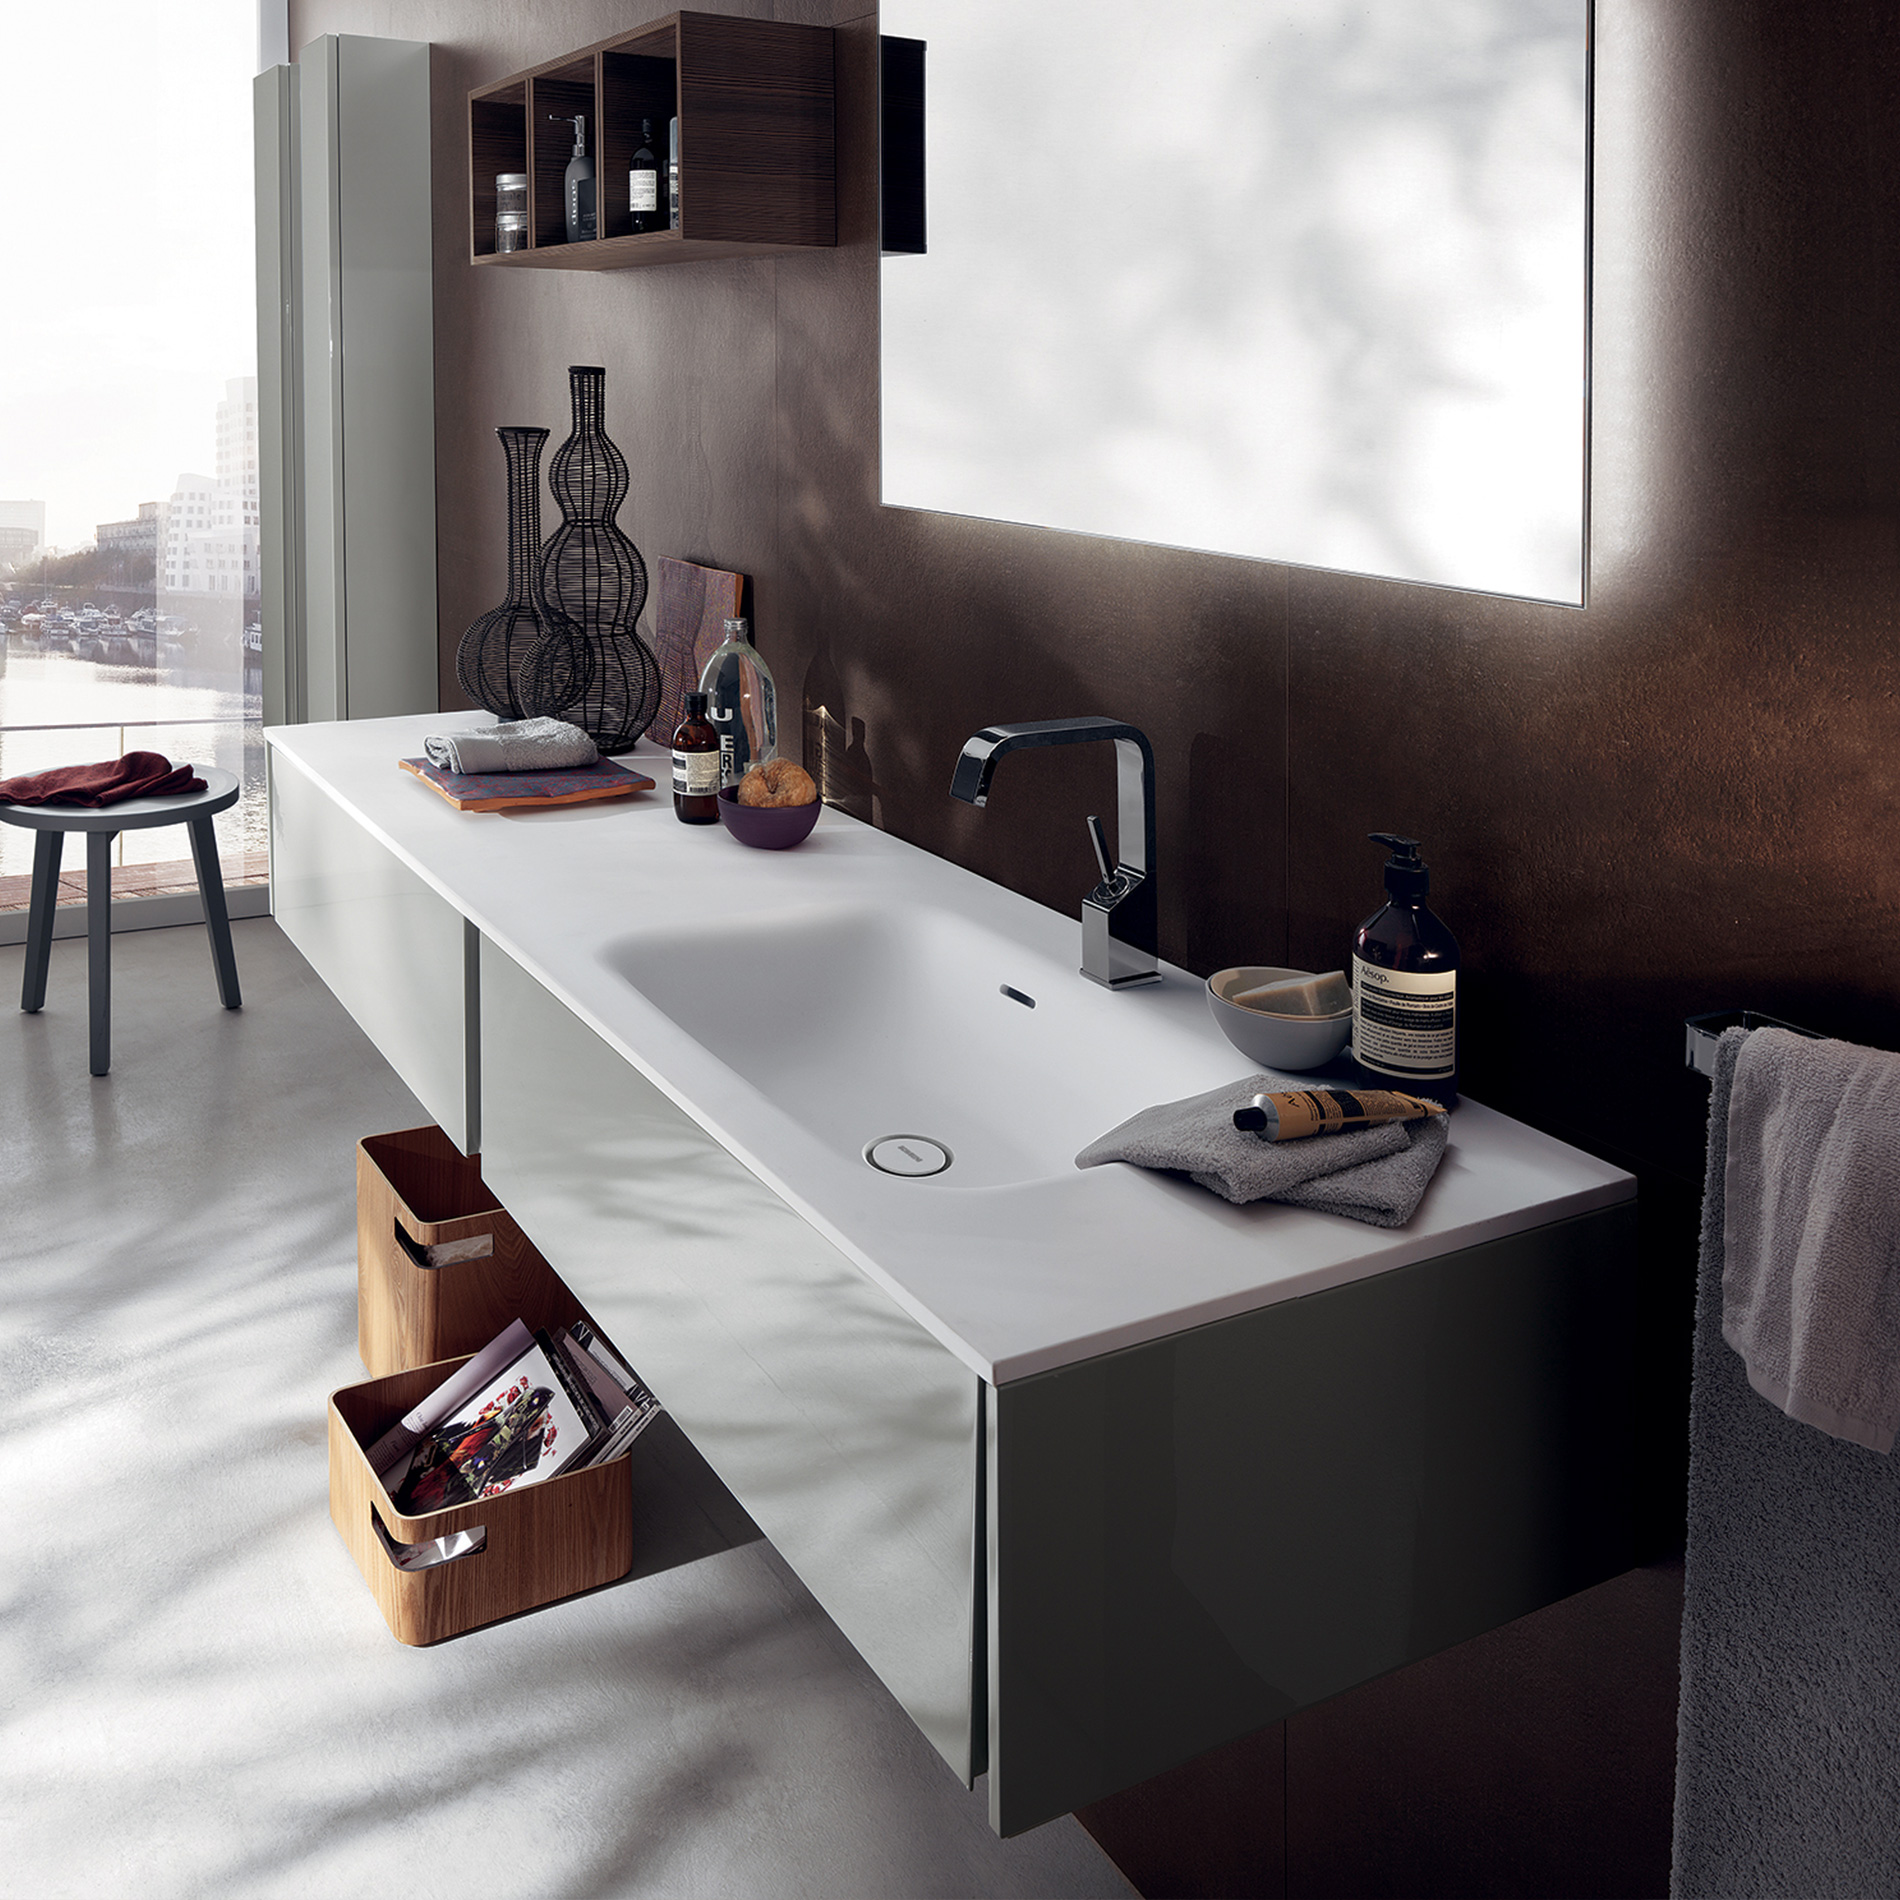 Nicos-International-home-products-Scavolini-washbasins-1